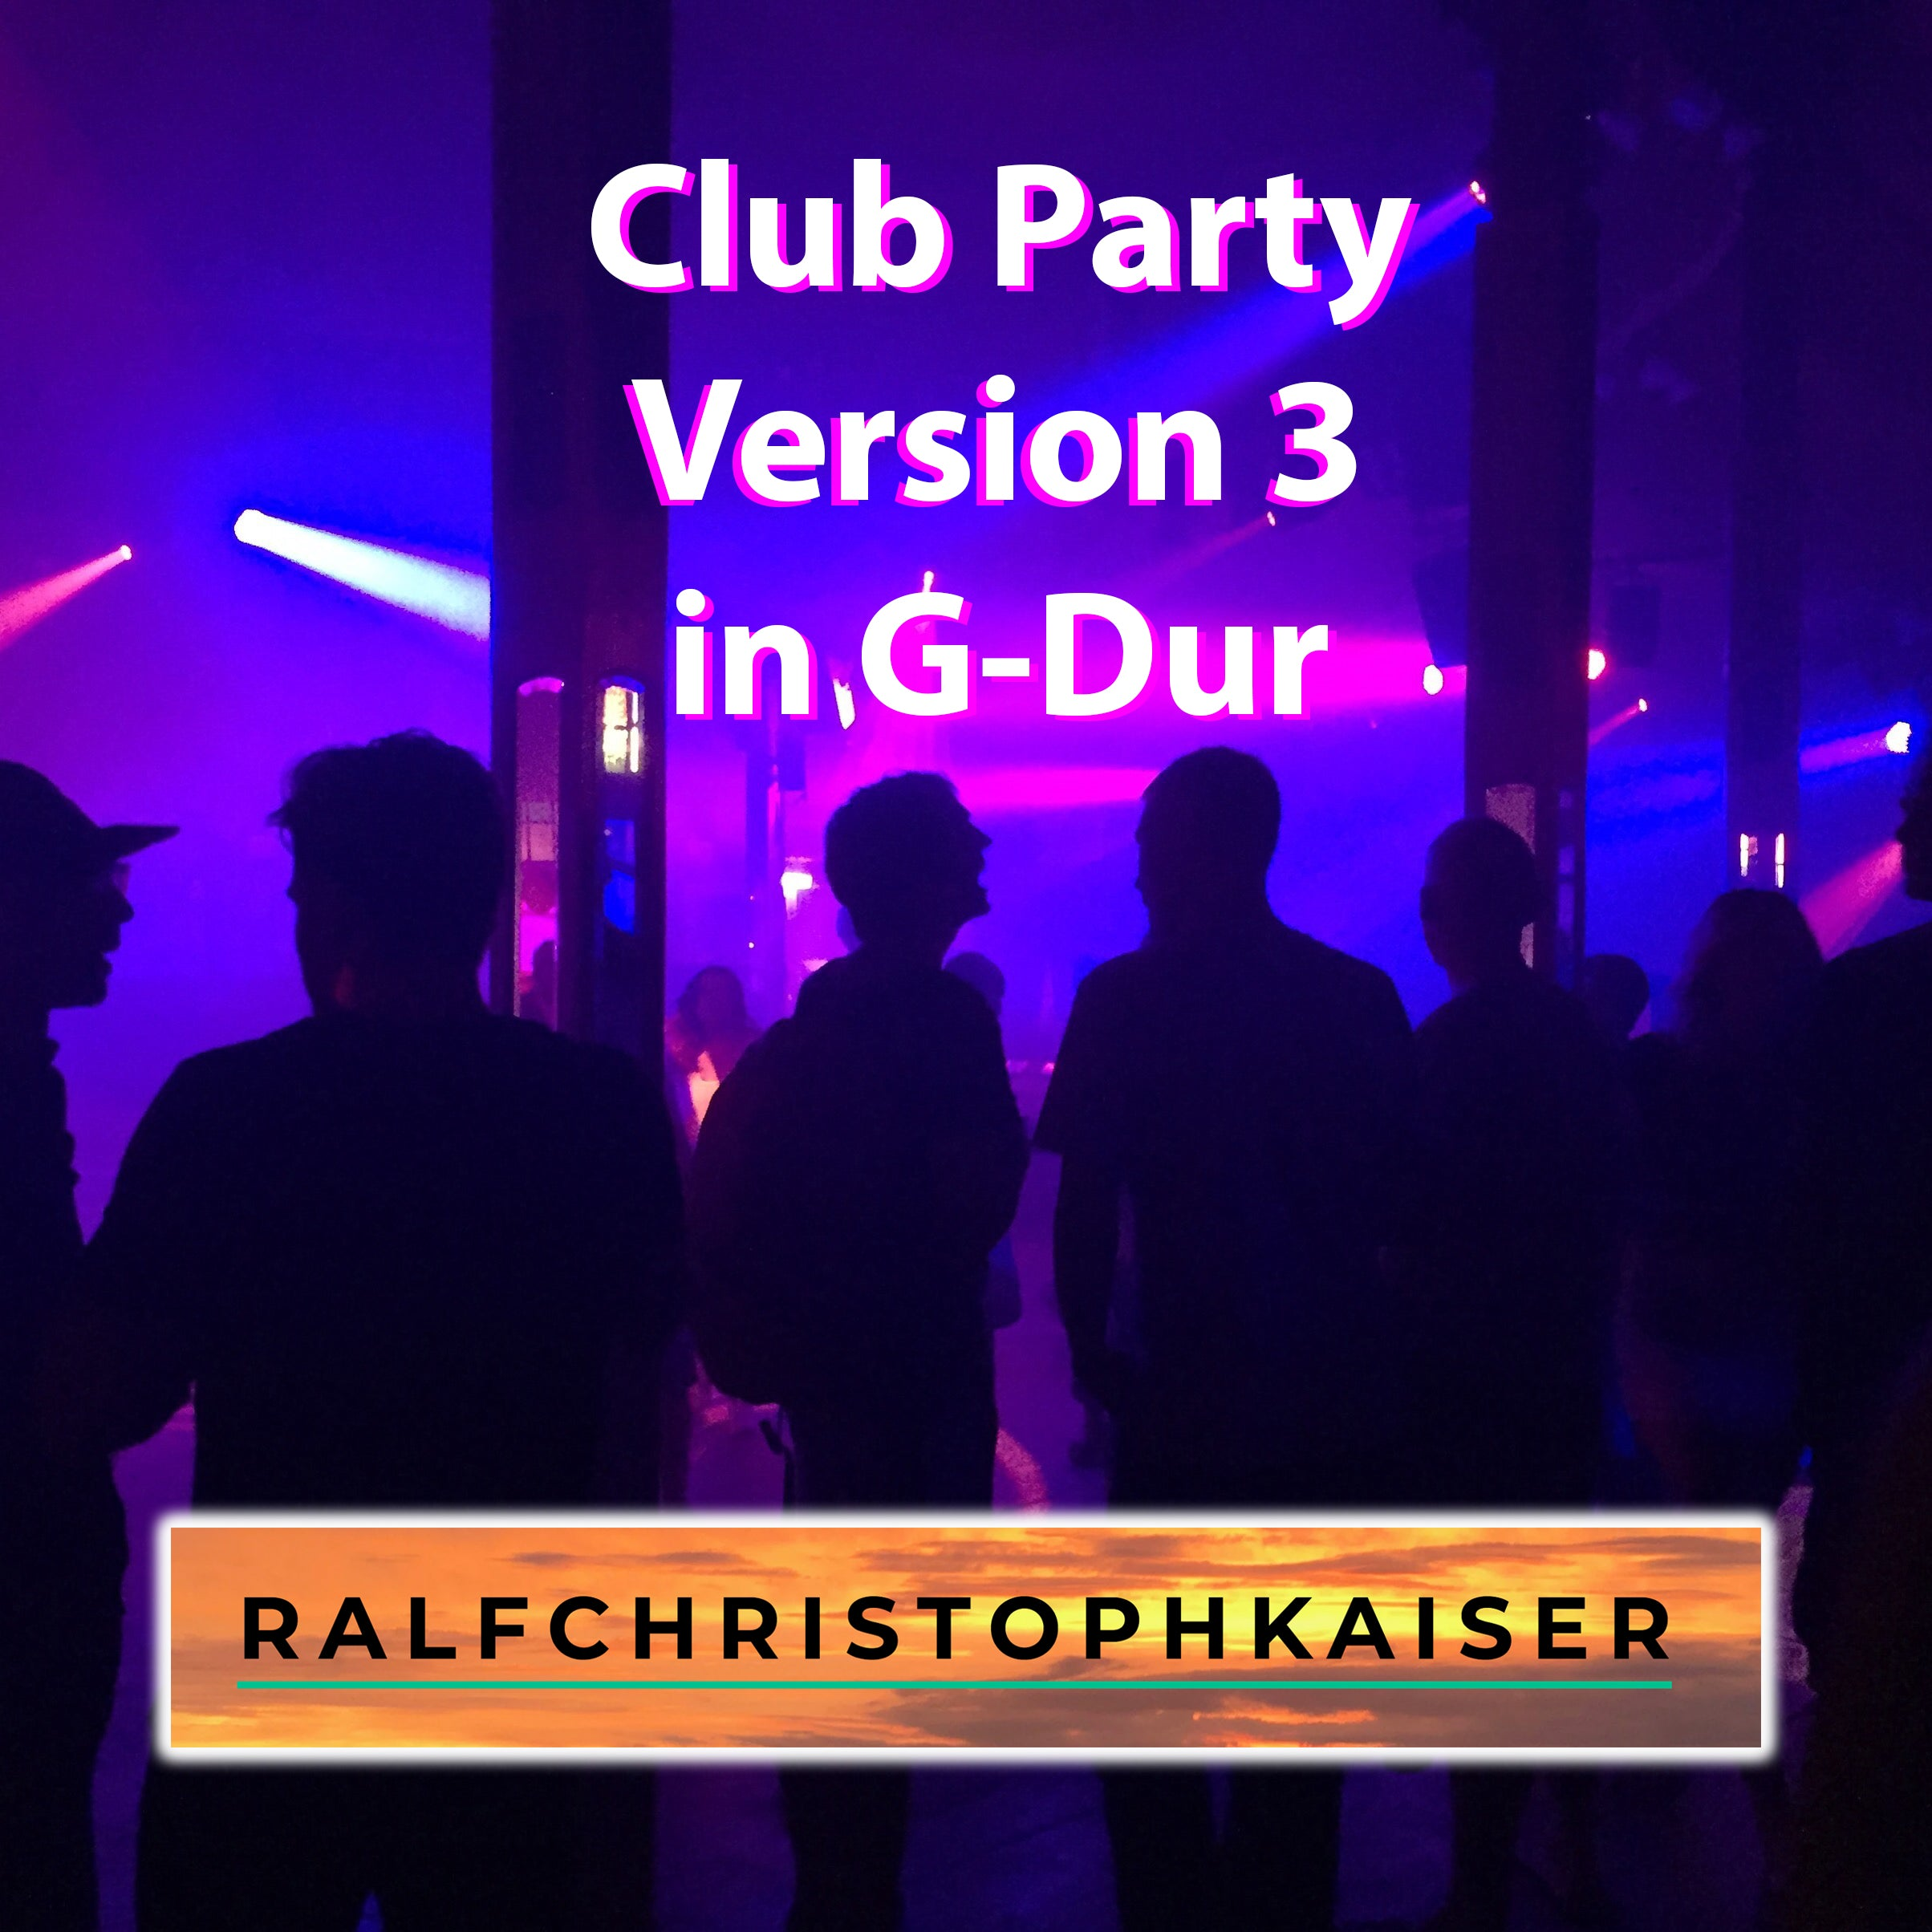 Club Party in G-Dur by Ralf Christoph Kaiser Version 3 Full Score Full Orchestra Leadsheet and Parts